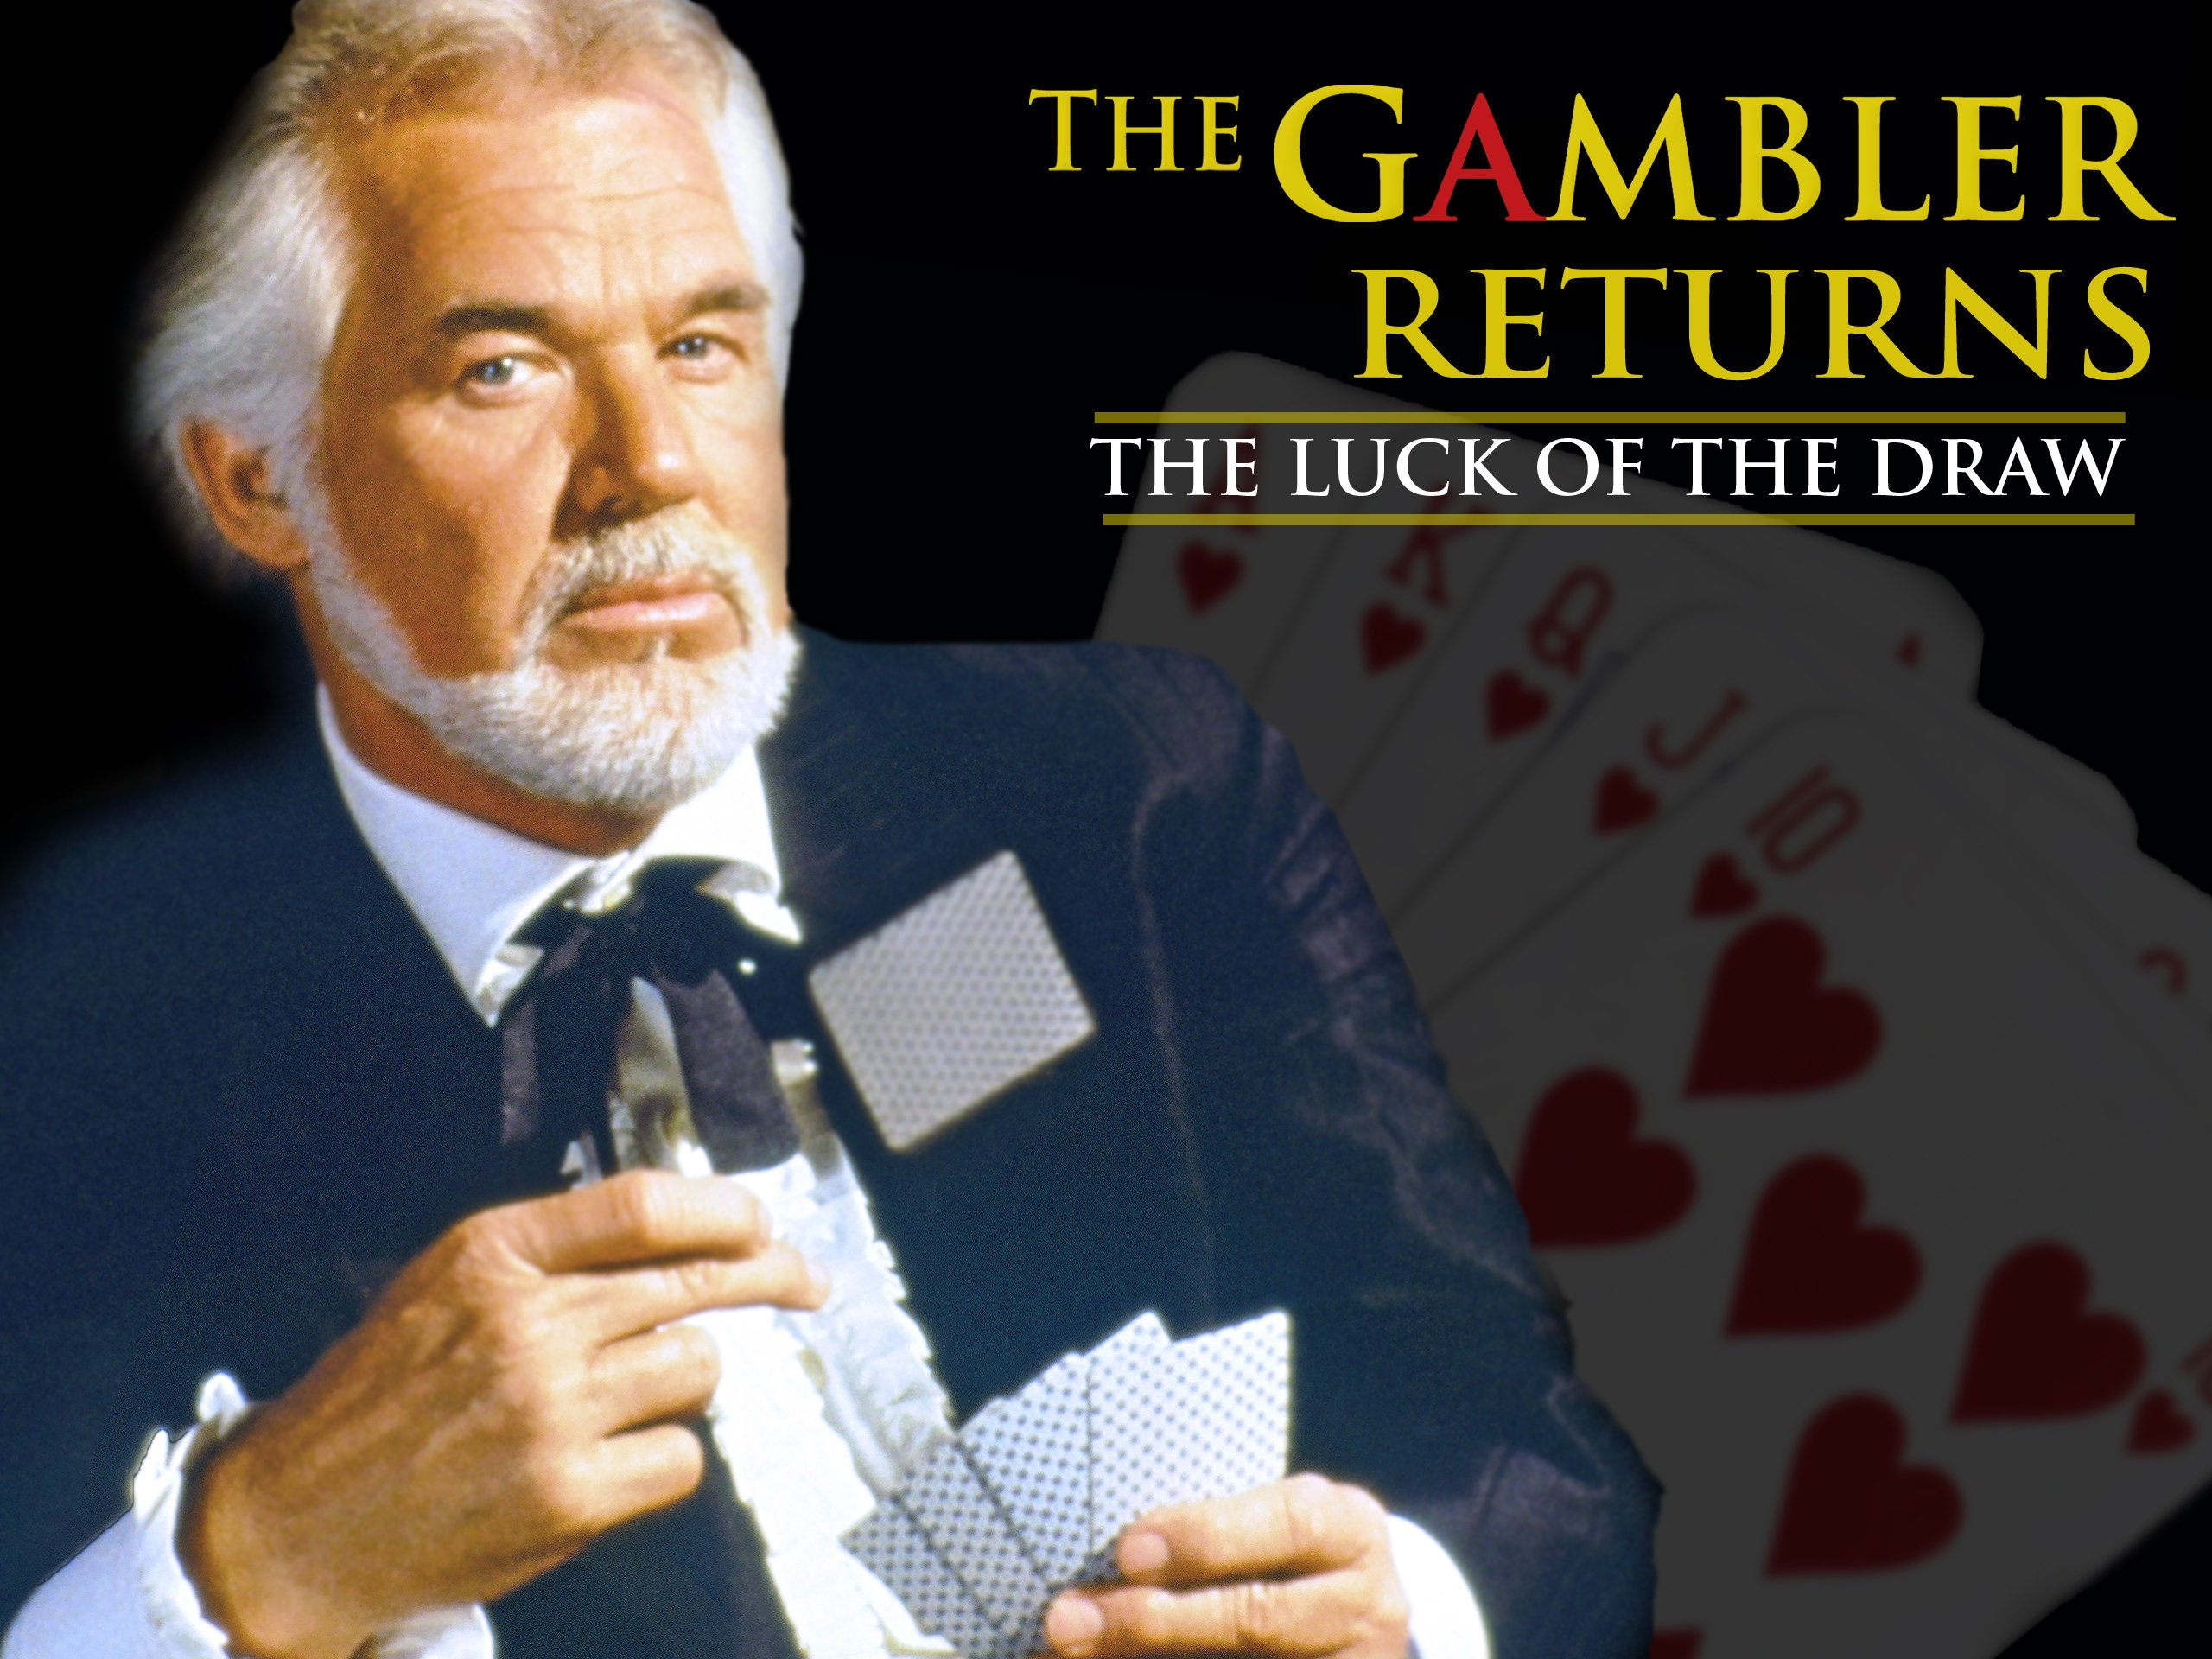 Watch Gambler 4 Luck Of The Draw The Complete Miniseries Season 1 Prime Video